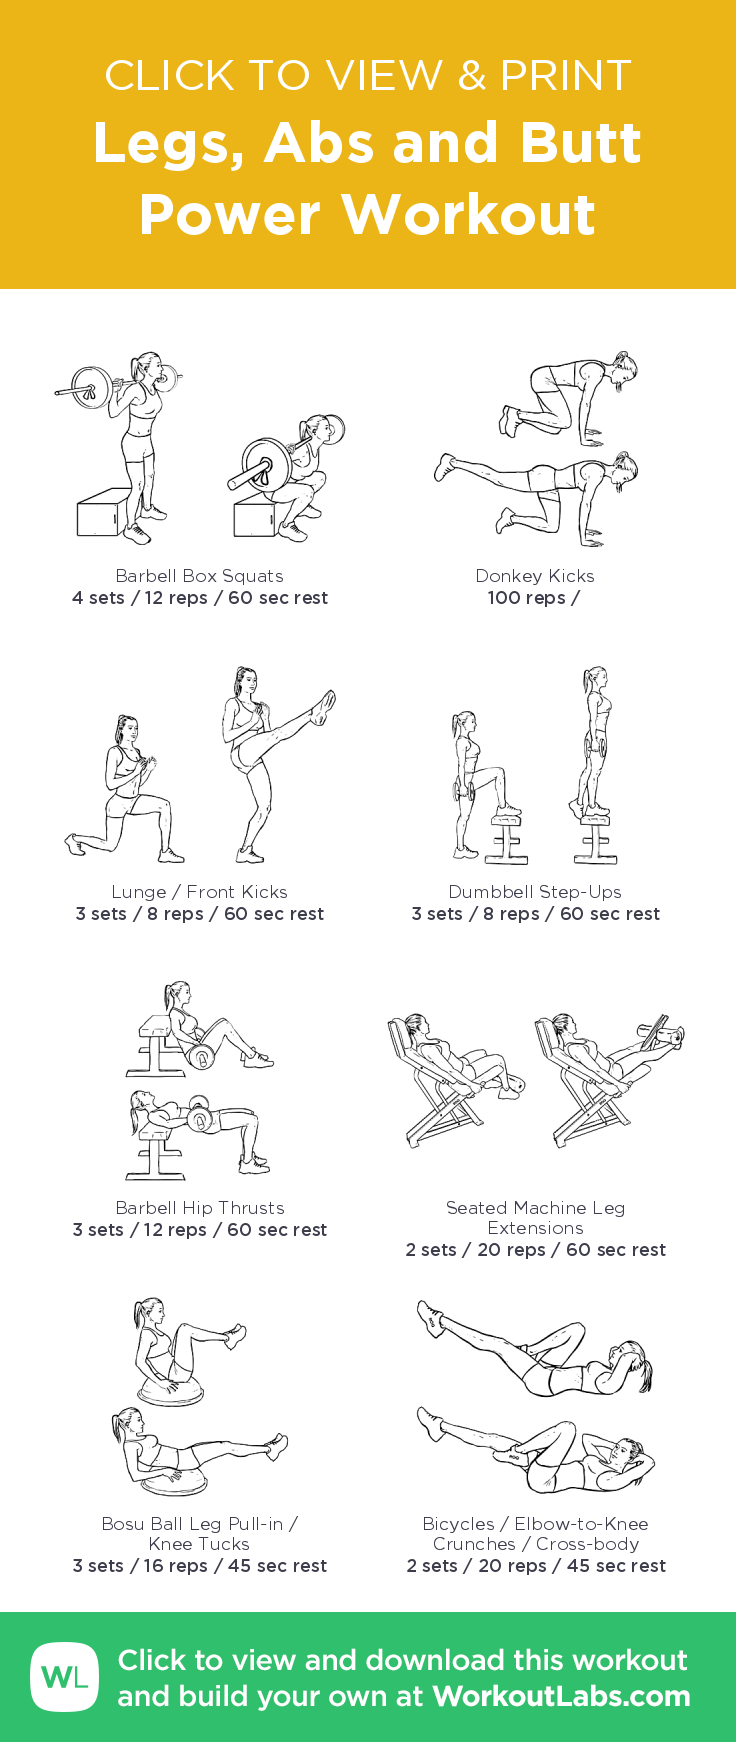 Legs, Abs and Butt Power Workout – illustrated exercise plan created